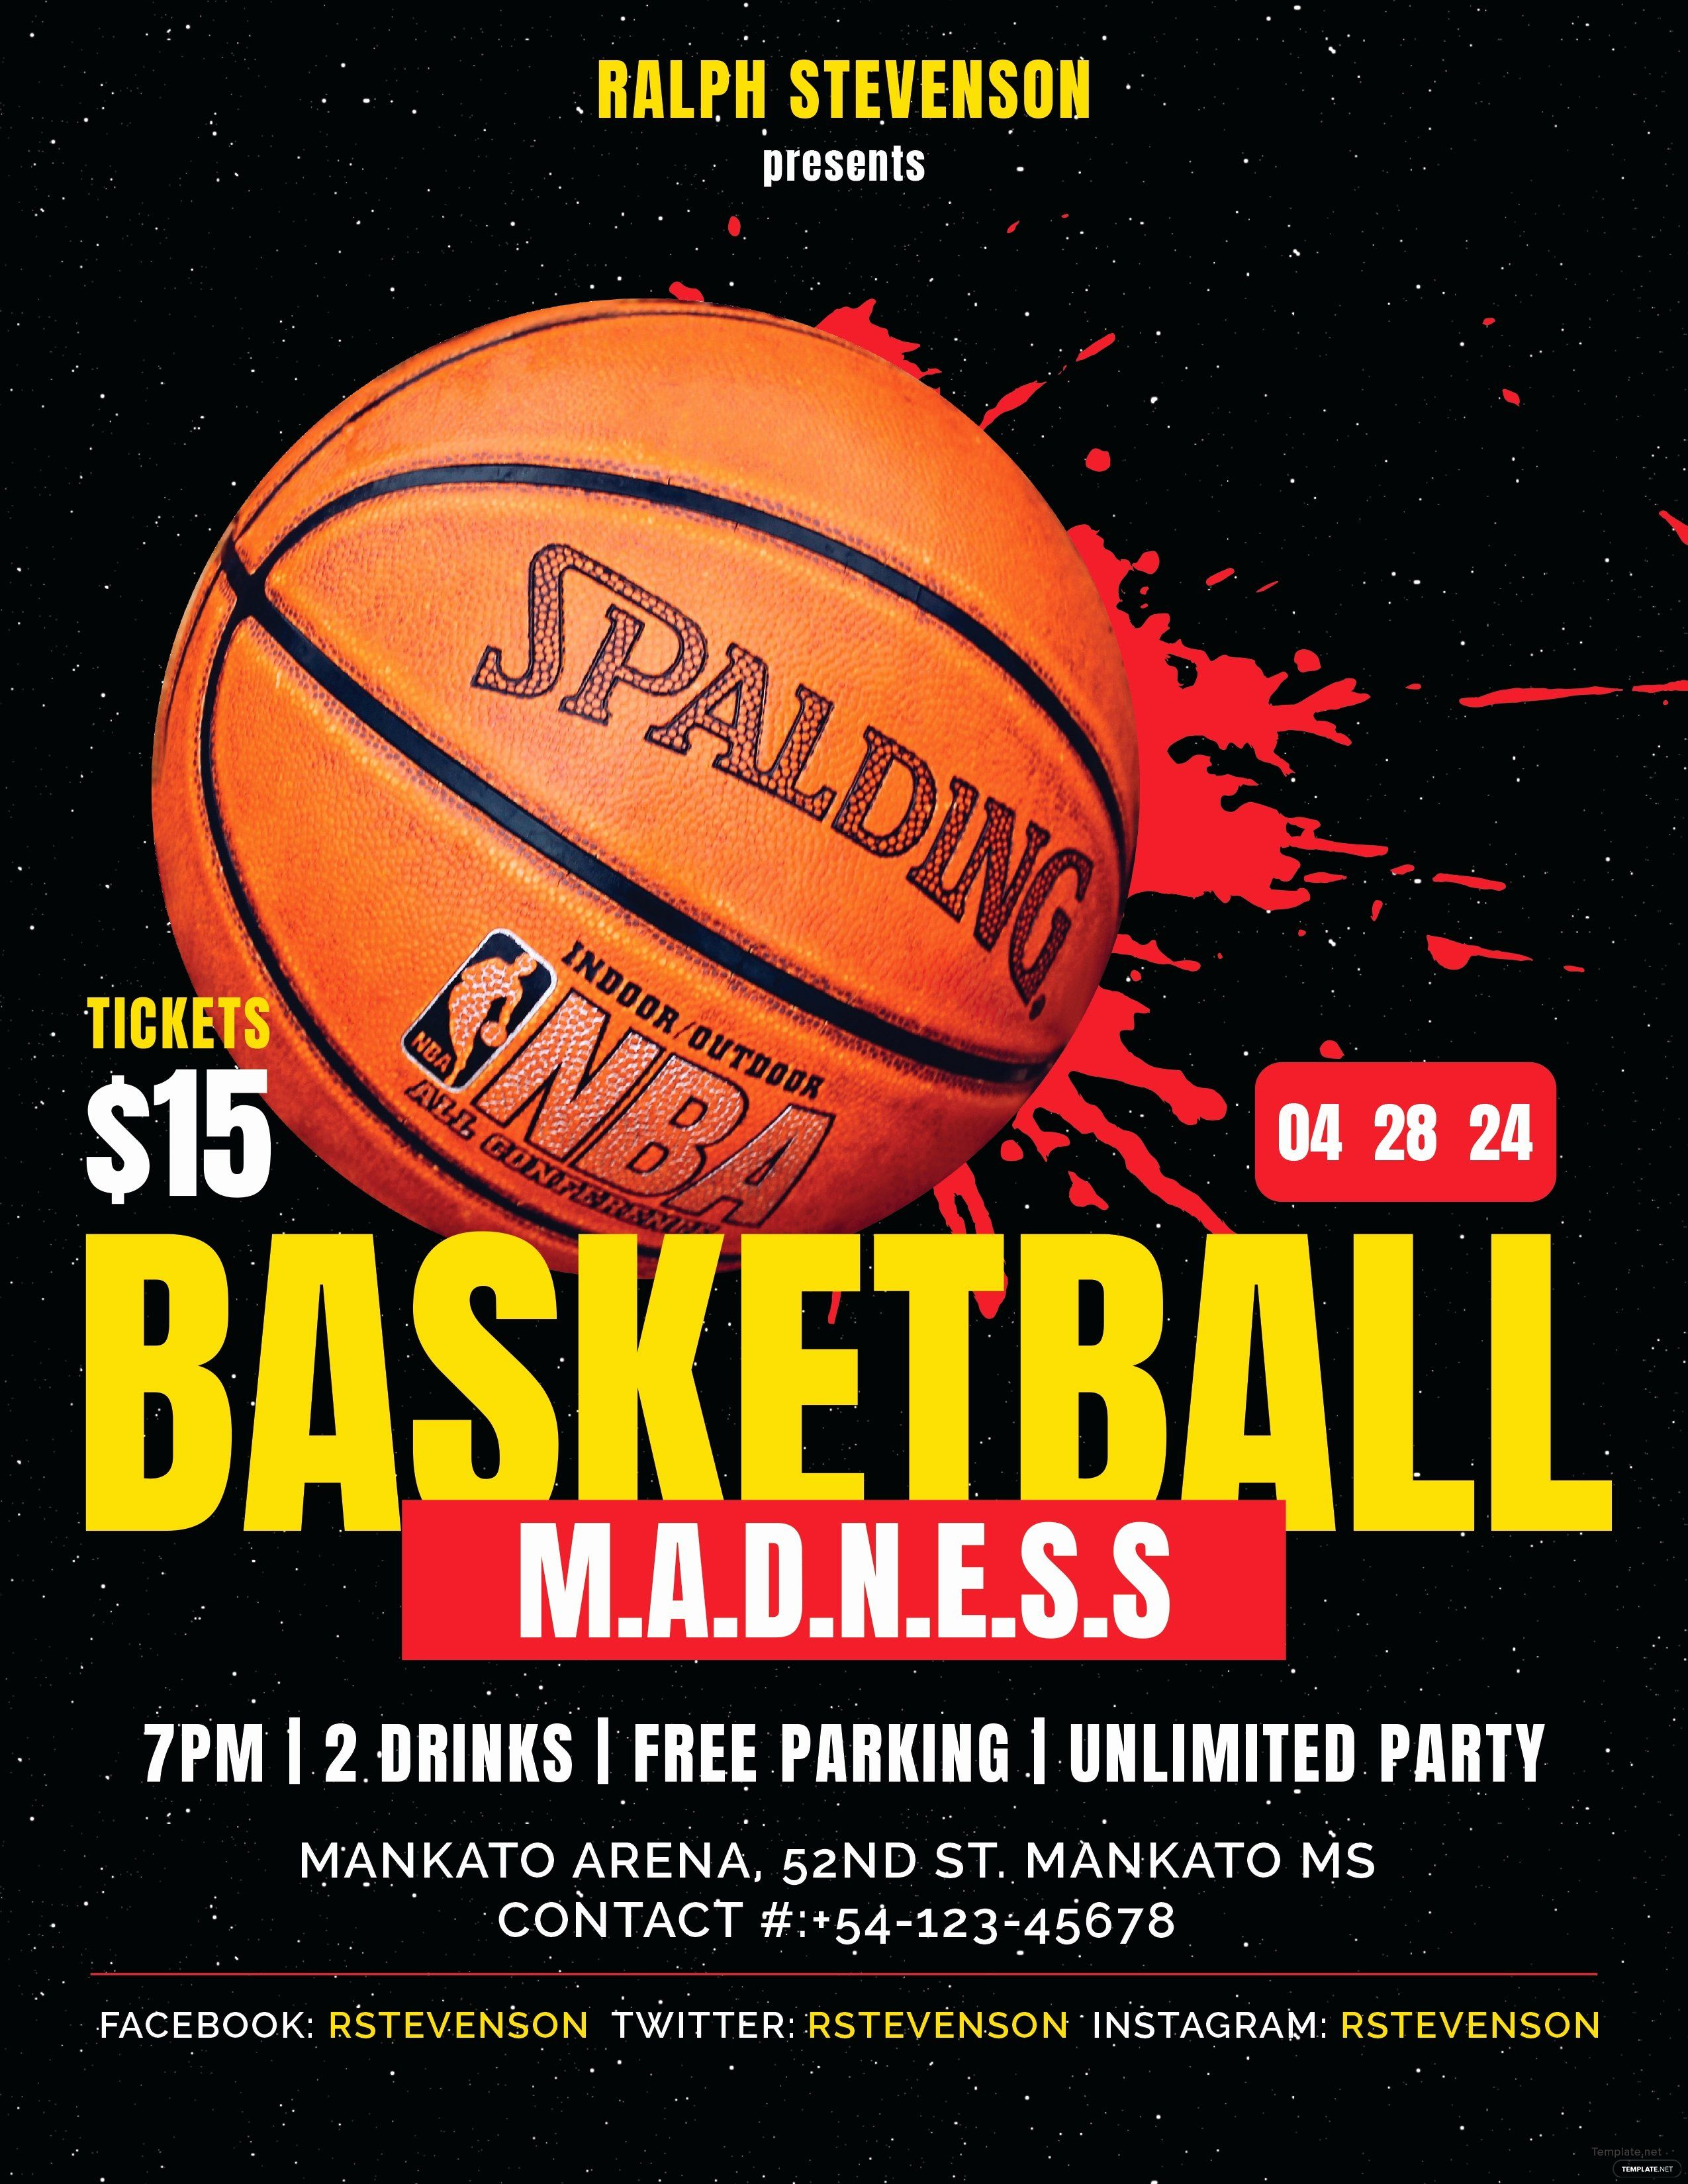 Basketball Tournament Flyer Template Best Of Free Basketball Madness Flyer Template In Adobe Shop Flyer Template Free Basketball Sports Flyer